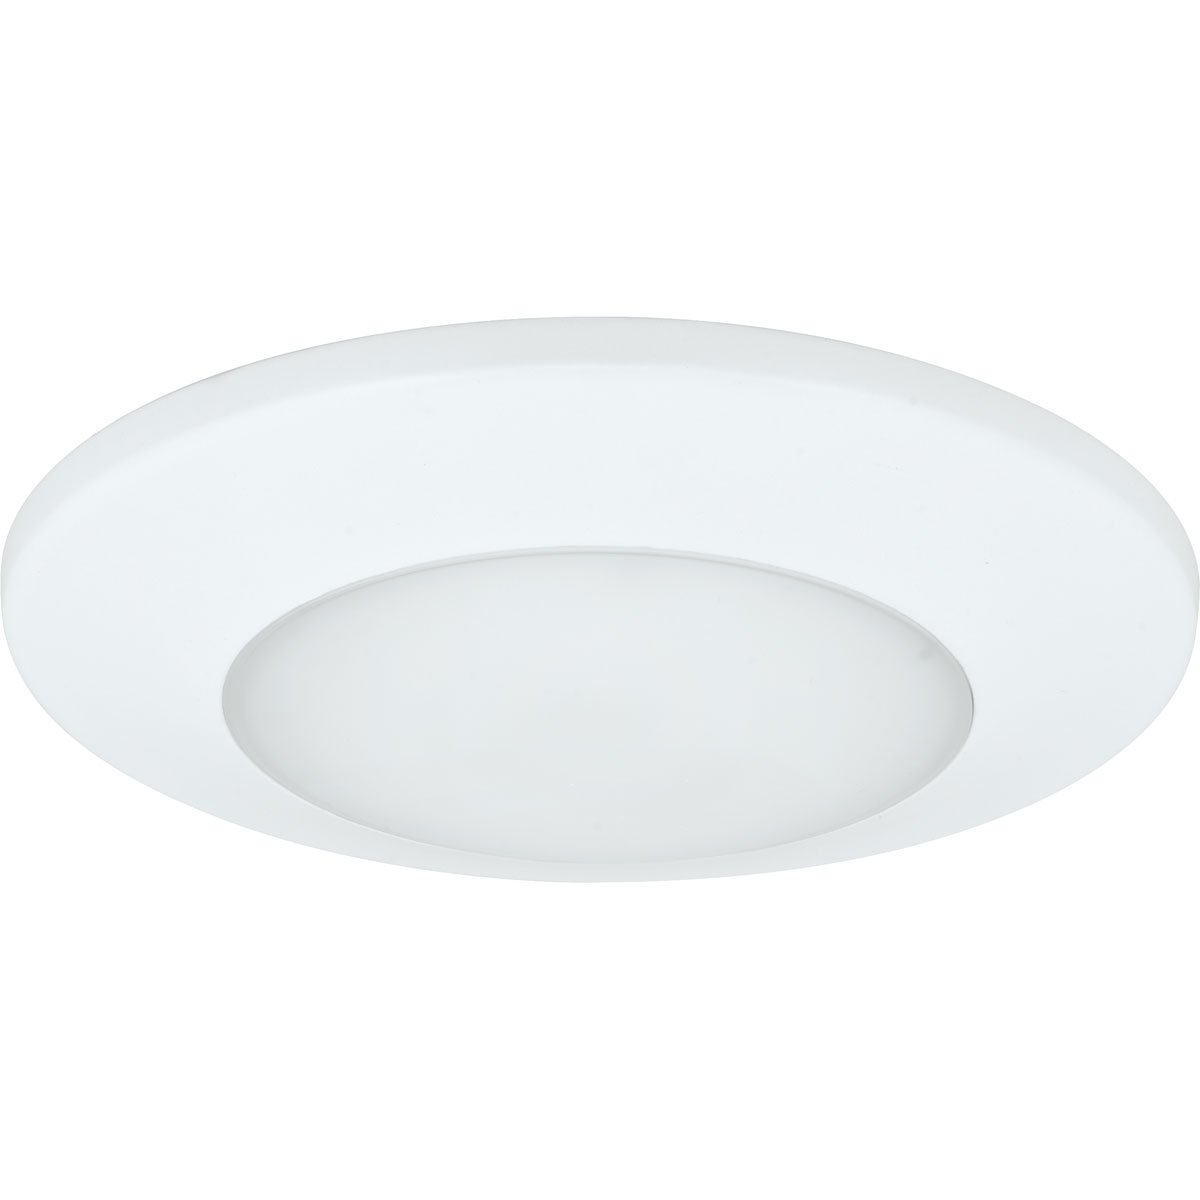 Progress Lighting P8222 28 30k Led Flush Mount White Wiring A Light Fitting Guide For How To Fit Or